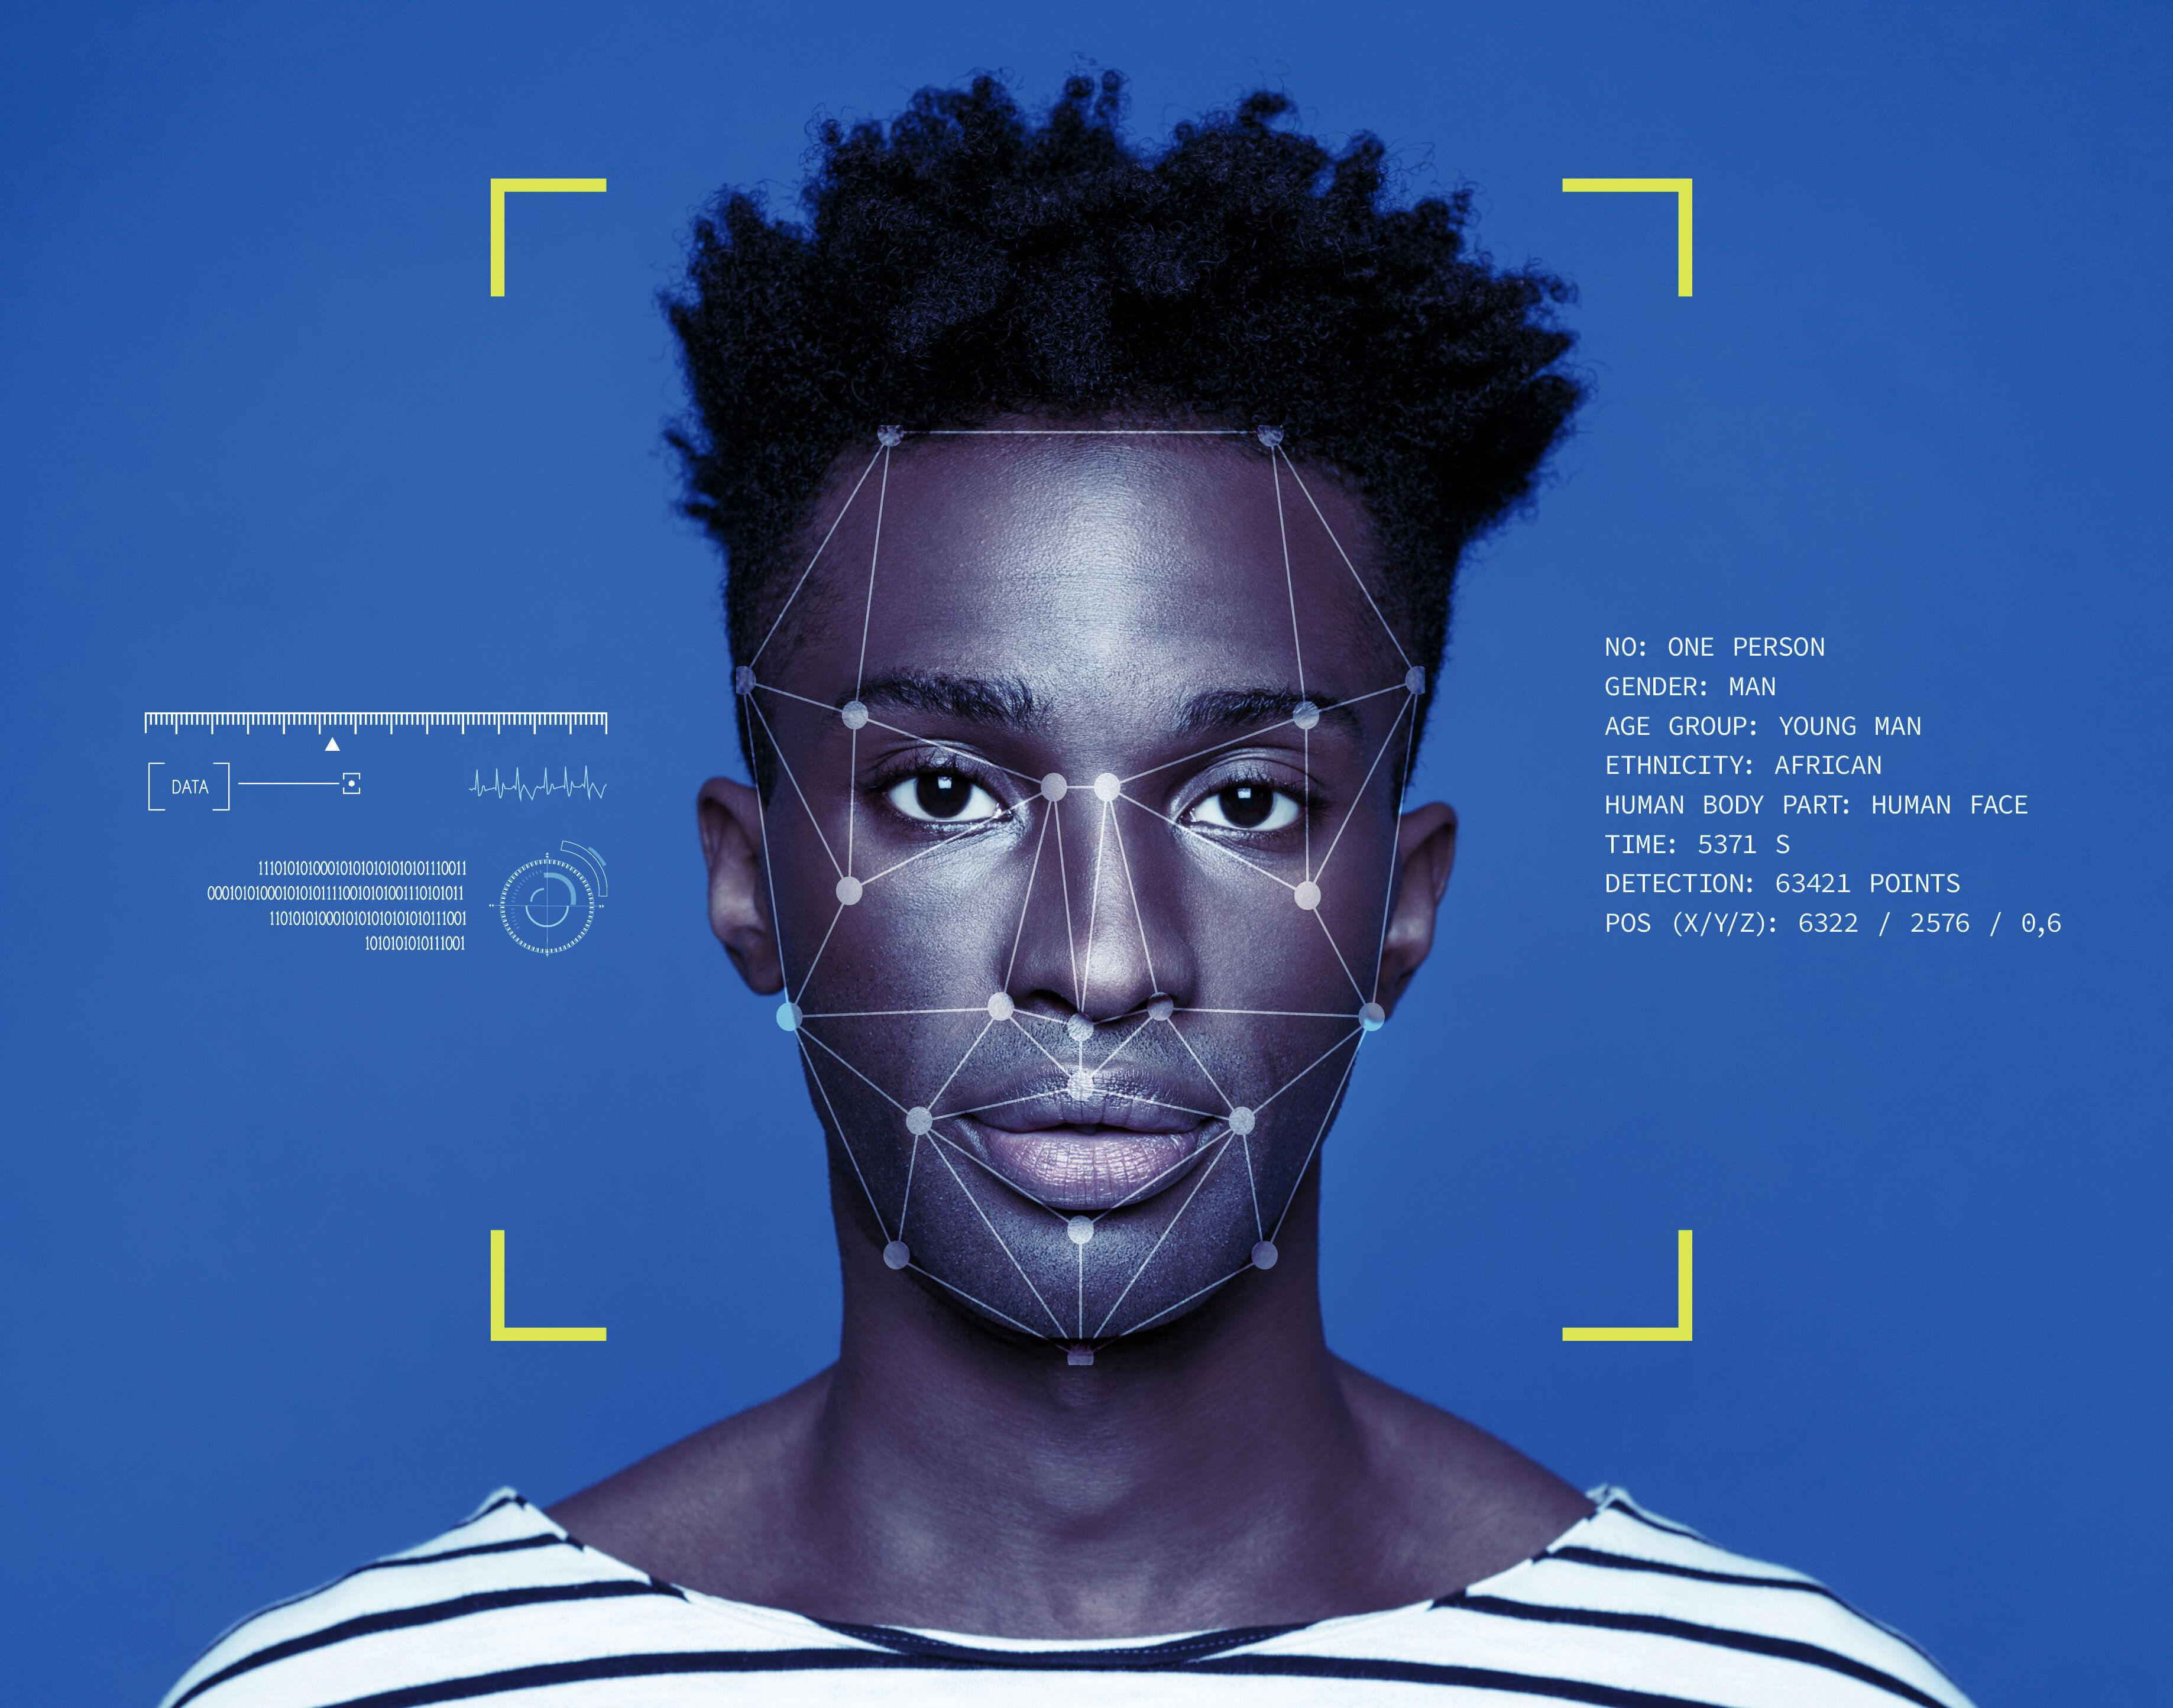 San Francisco Bans Use Of Facial Recognition Technology By Law